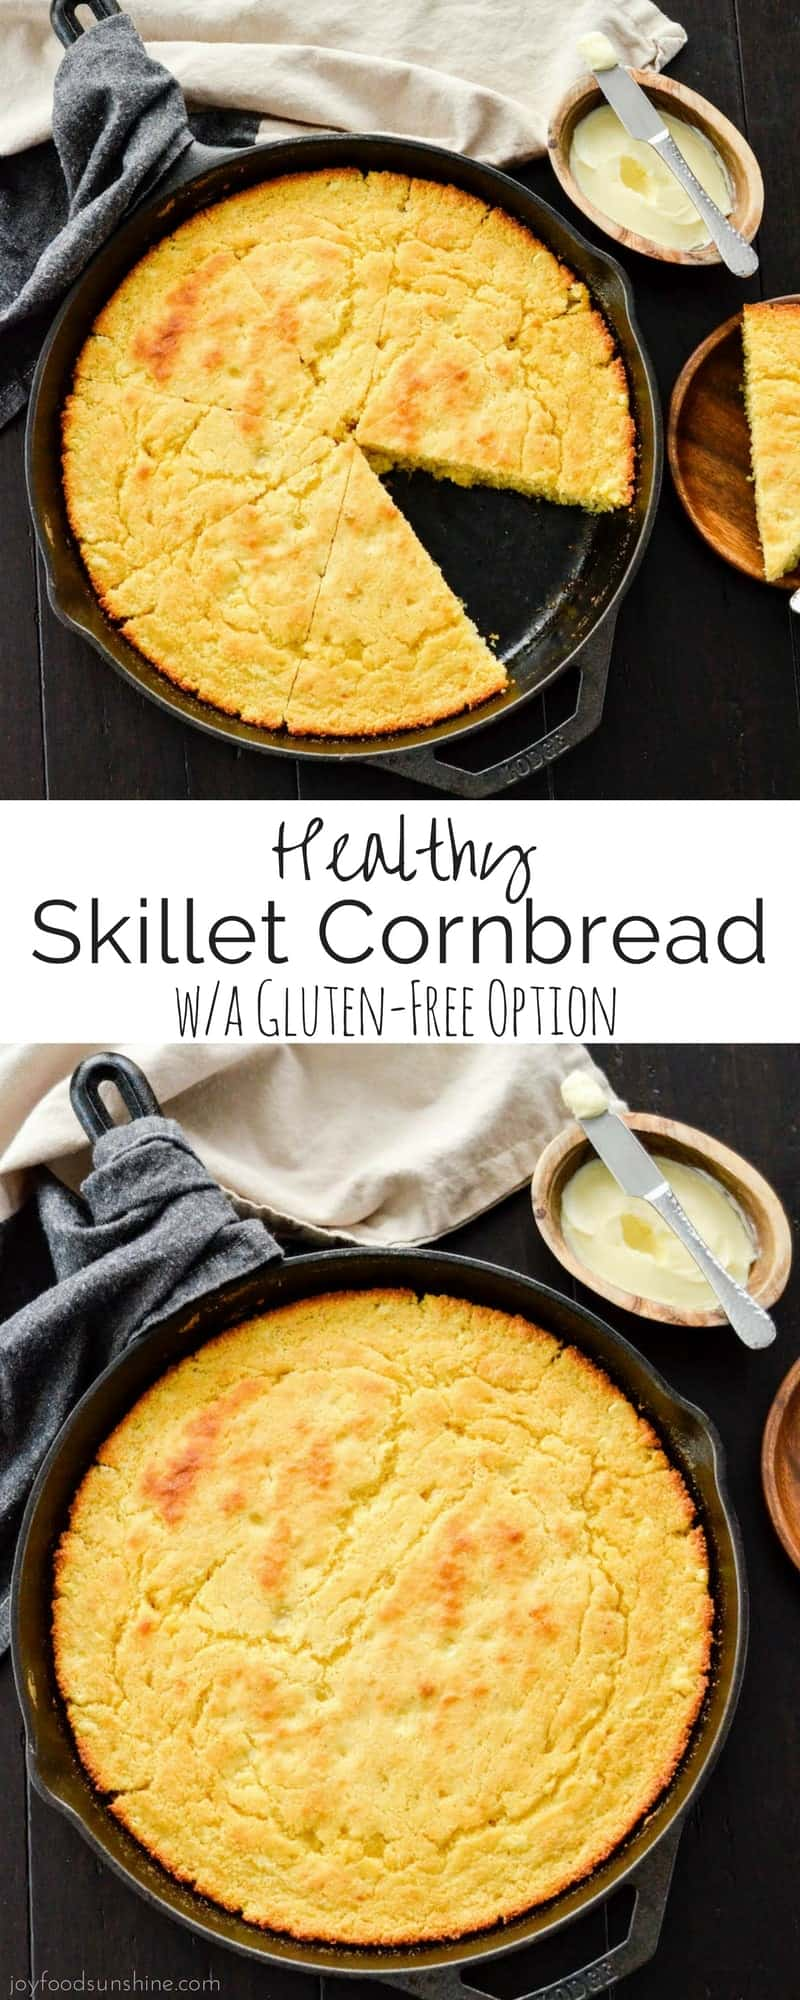 This easy Healthy Skillet Cornbread recipe is moist, slightly sweet and bursting with flavor! The perfect side dish to a bowl of chili!